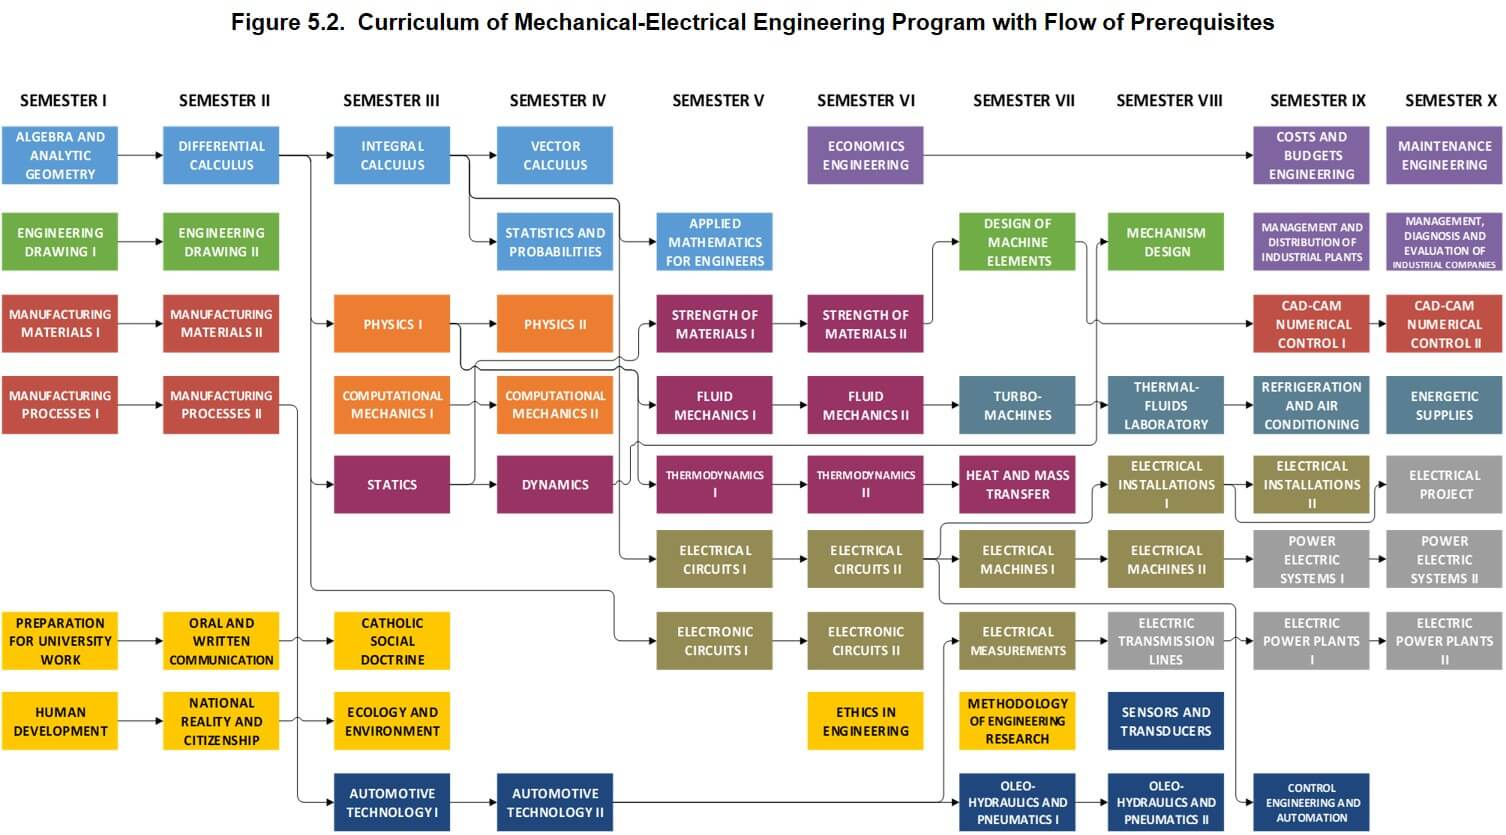 hight resolution of mechanical electrical with flow of prerrquisites mechanical electrical engineering program